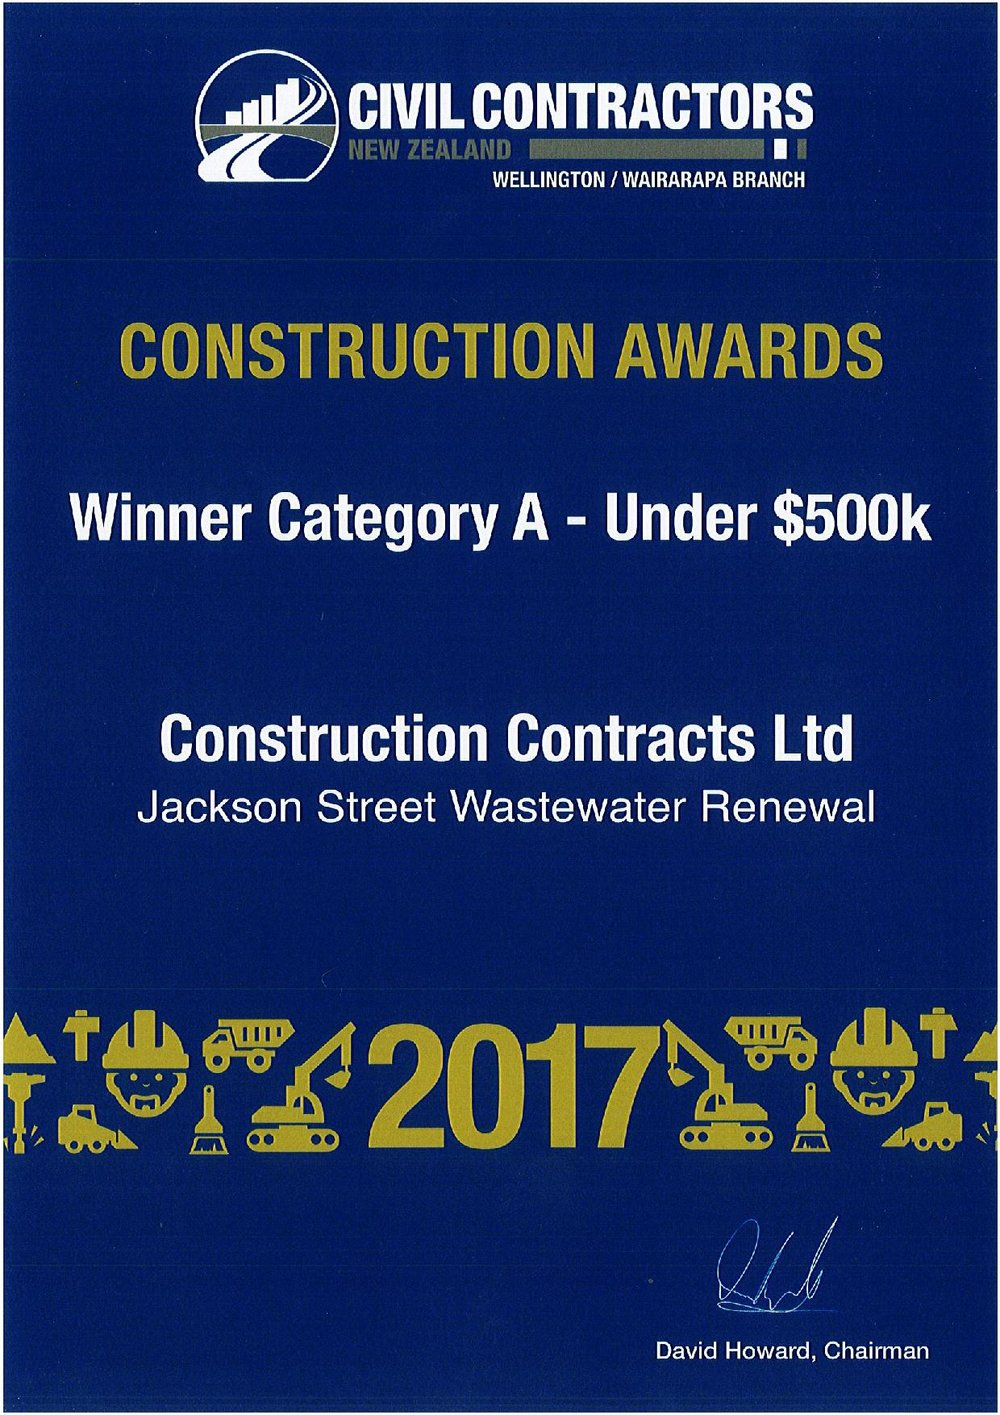 Local Construction Awards Cert 2017.jpg